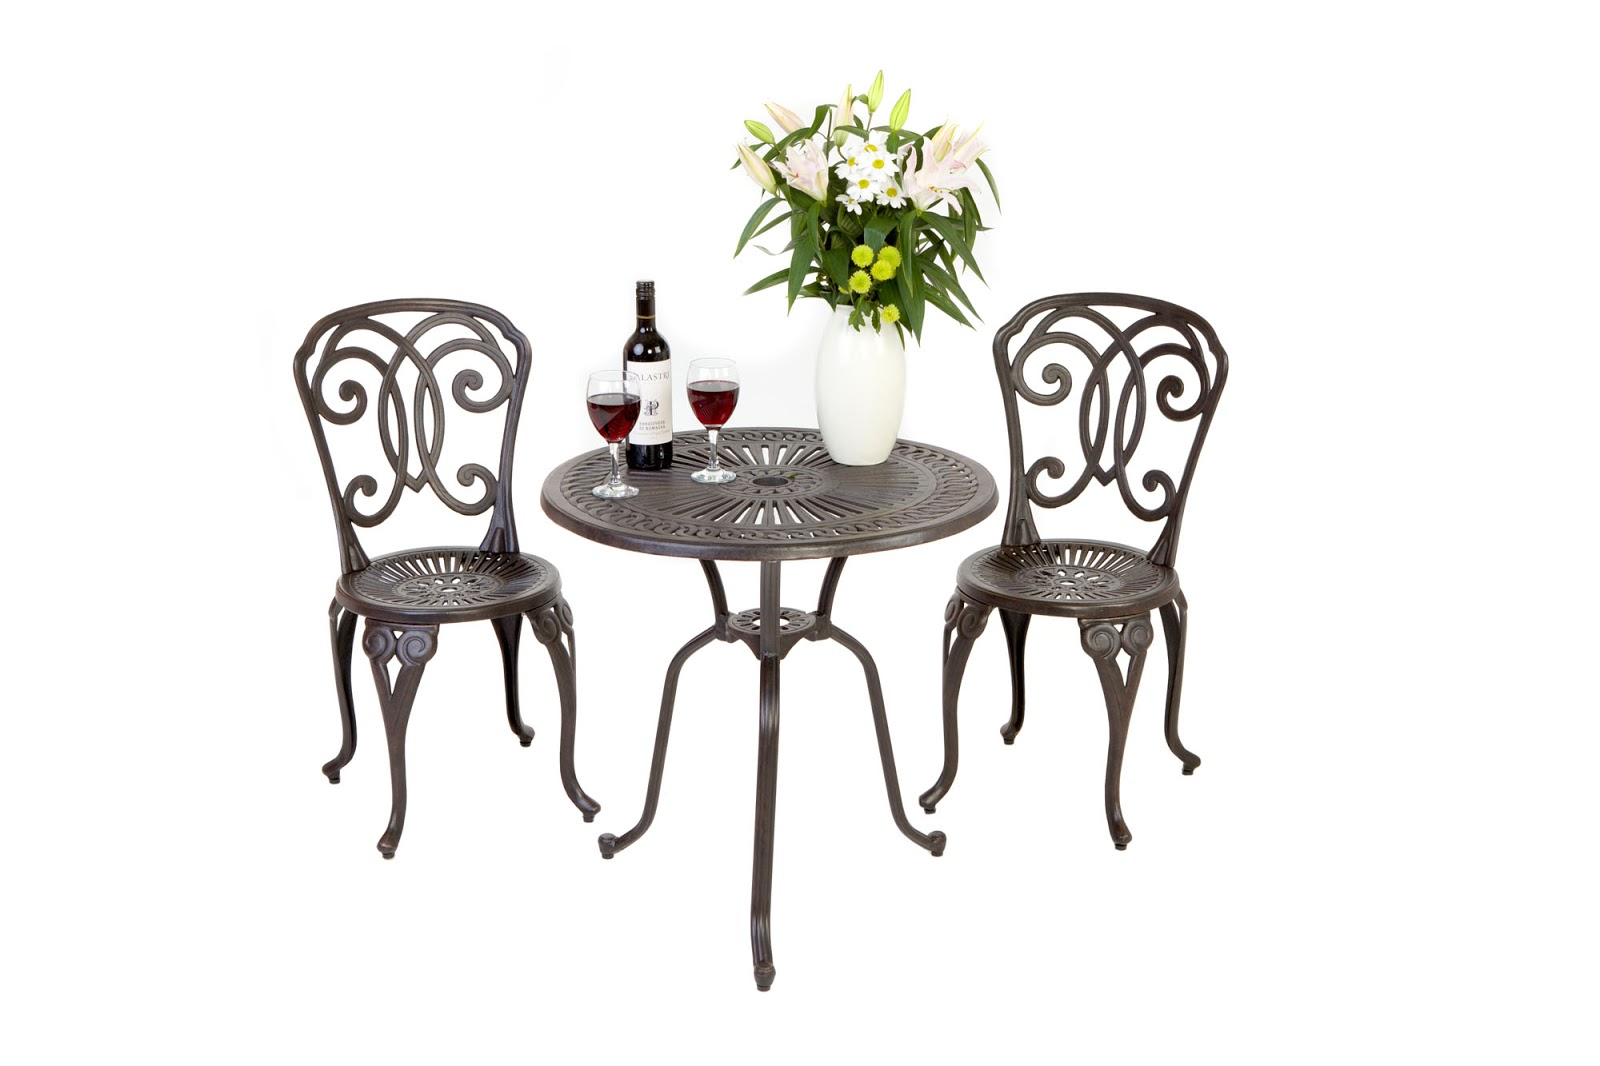 Wrought Iron Garden Furniture Uk Outside edge garden furniture blog free cast aluminium garden free cast aluminium garden bistro set or bench when buying one of our 6 seater garden furniture sets or above free uk delivery workwithnaturefo